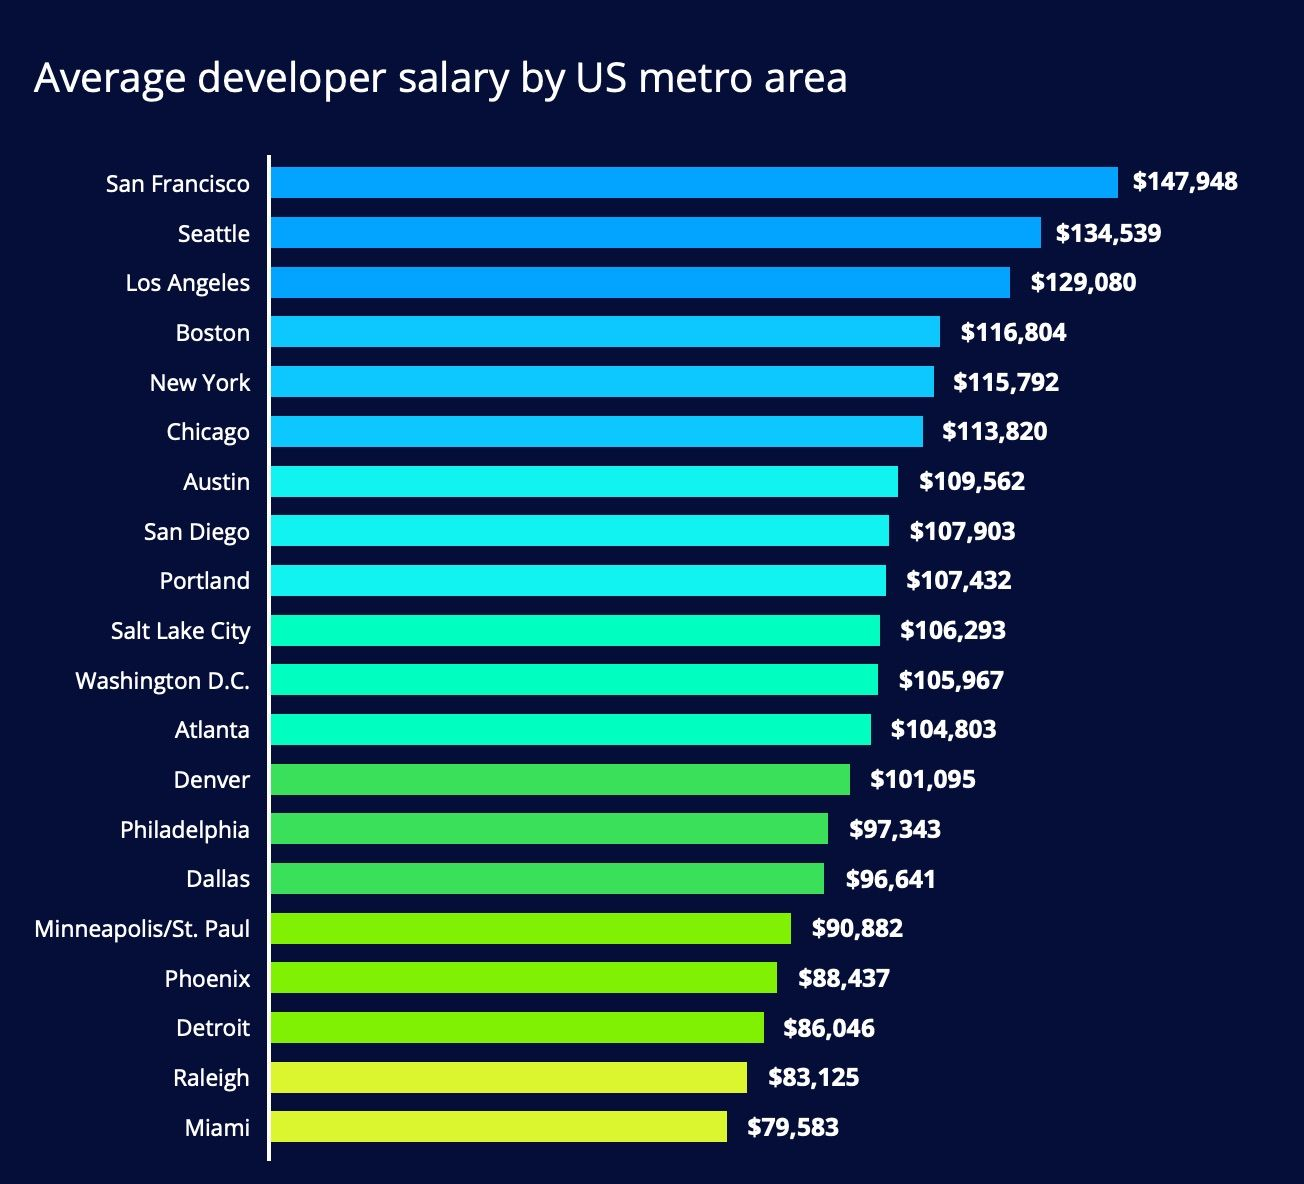 Average developer salary by US metro area